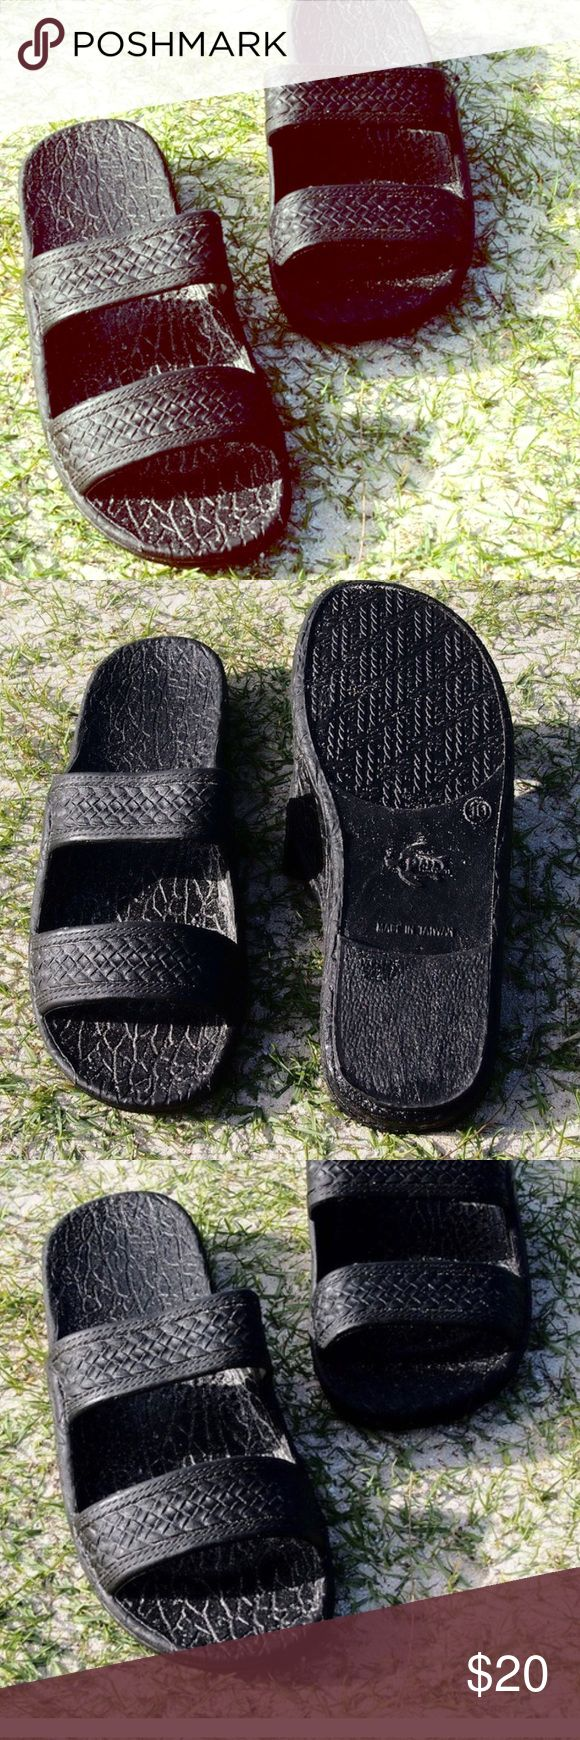 50% off bundles Jandals by Pali Hawaii• Sz 9• black Jesus sandals• these stylish and comfortable sandals have been worn in Hawaii since 1985• Hawaiian Jesus Sandals• lightweight and weave pattern sandals• vegan• arch support Pali Hawaii Shoes Sandals